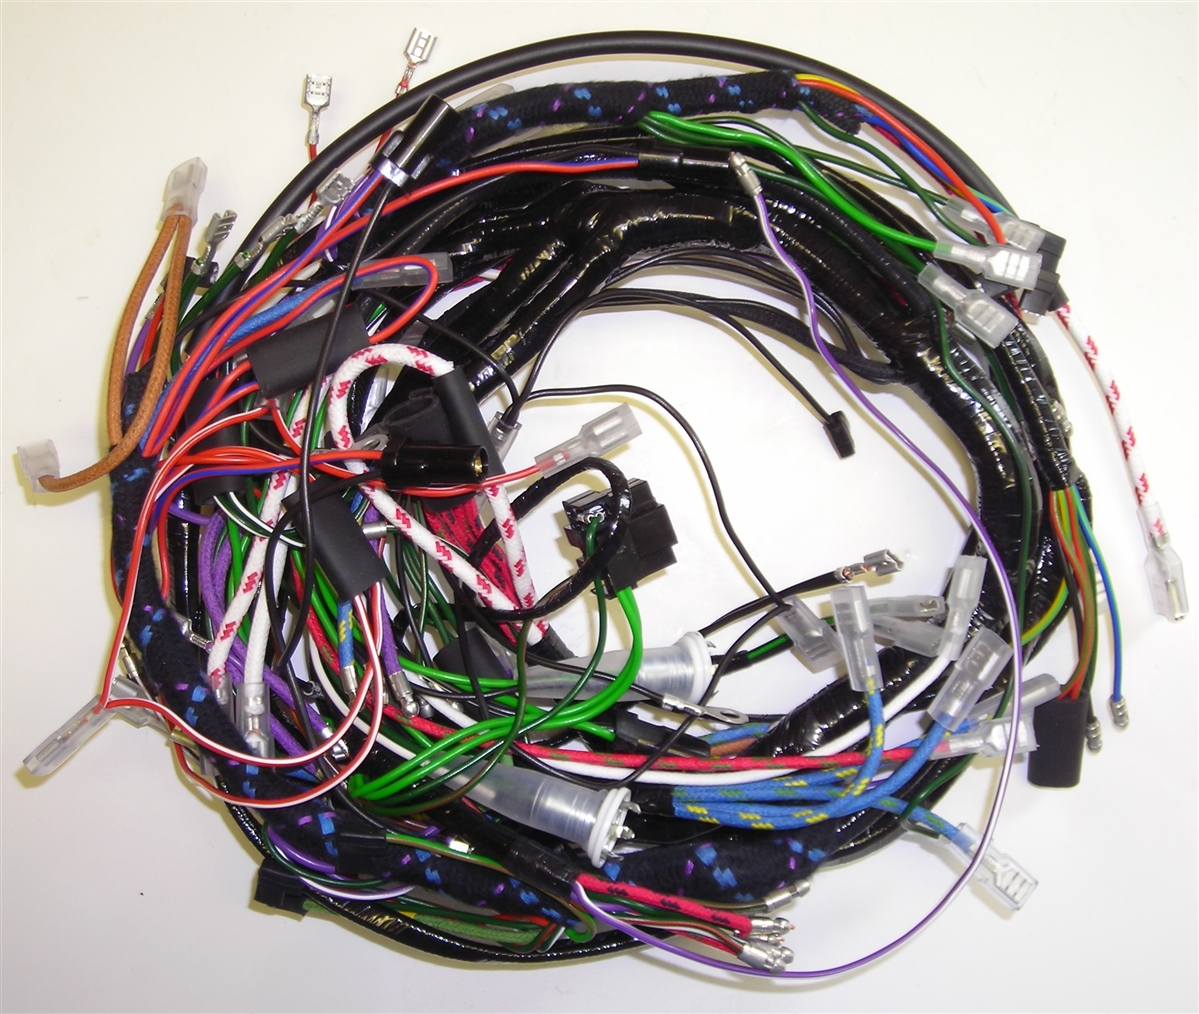 229 2?1382526734 wiring harness for late series 1 5 jaguar xke jaguar wiring harness at fashall.co